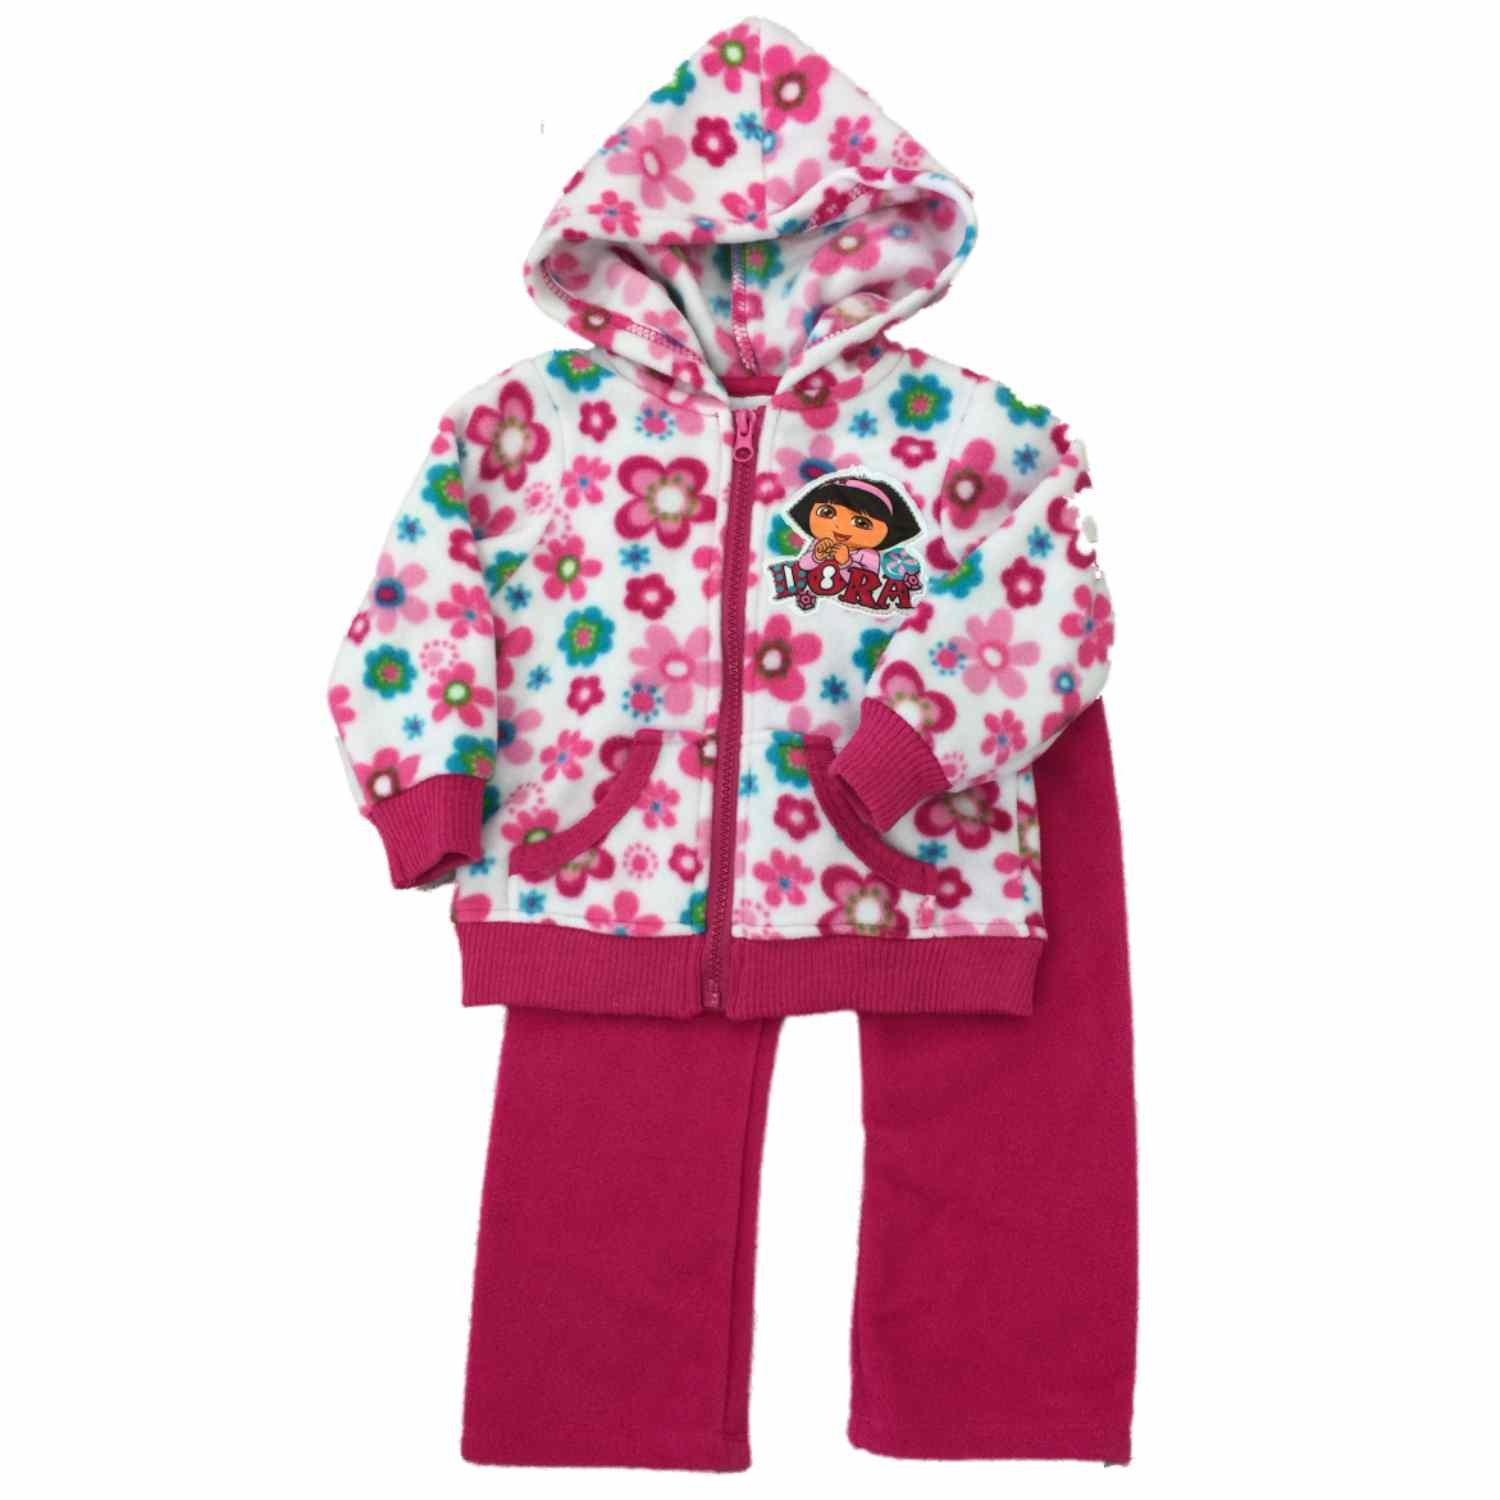 Amazon.com  Infant Toddler Dora Explorer Girls Fleece Jogger Hoddie  Sweatsuit Outfit 2T  Clothing acb30b370146